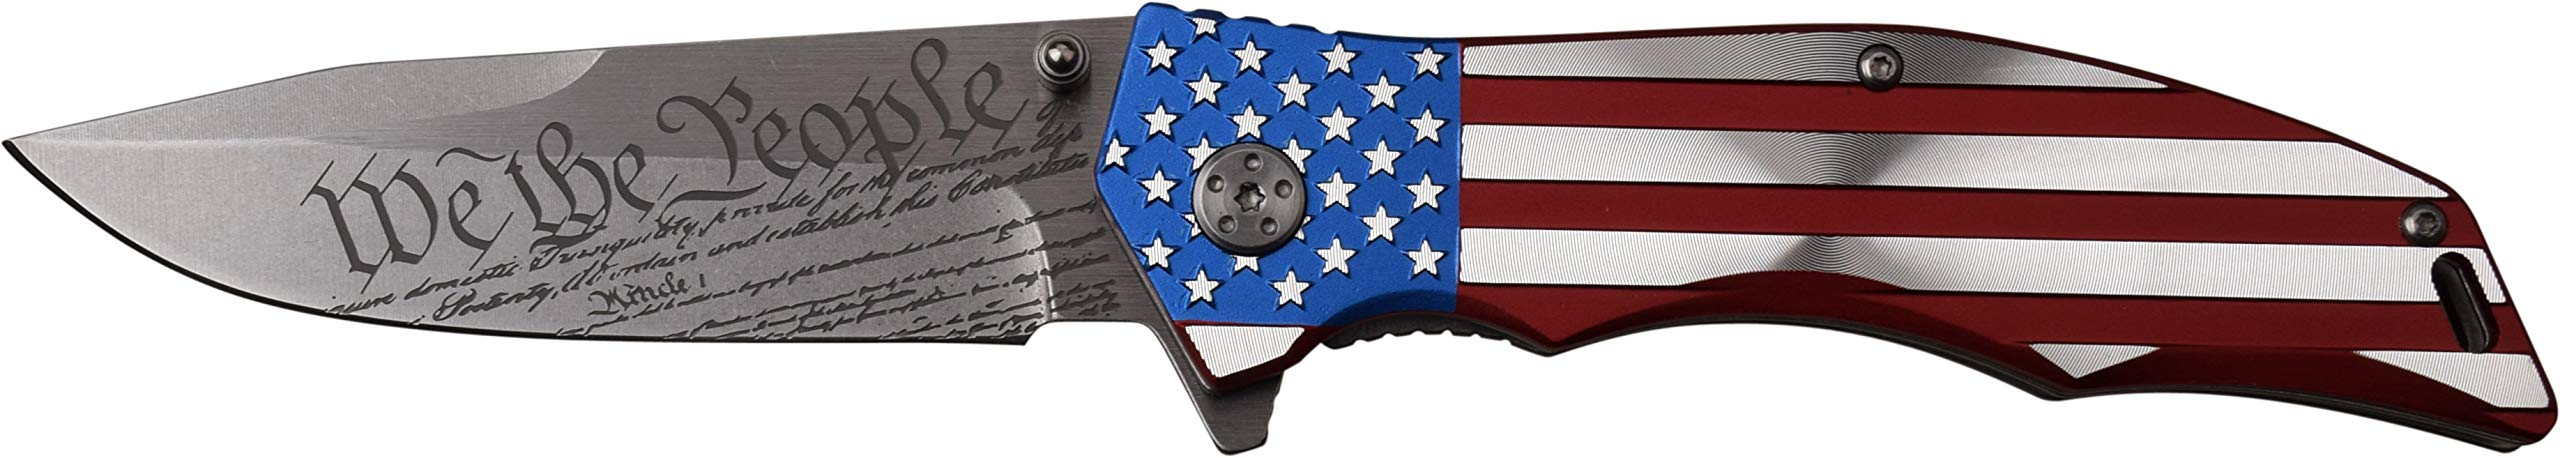 MTECH USA MX-A849CL Spring Assist Folding Knife, Straight Edge Blade, American Flag Handle, 5'' Closed